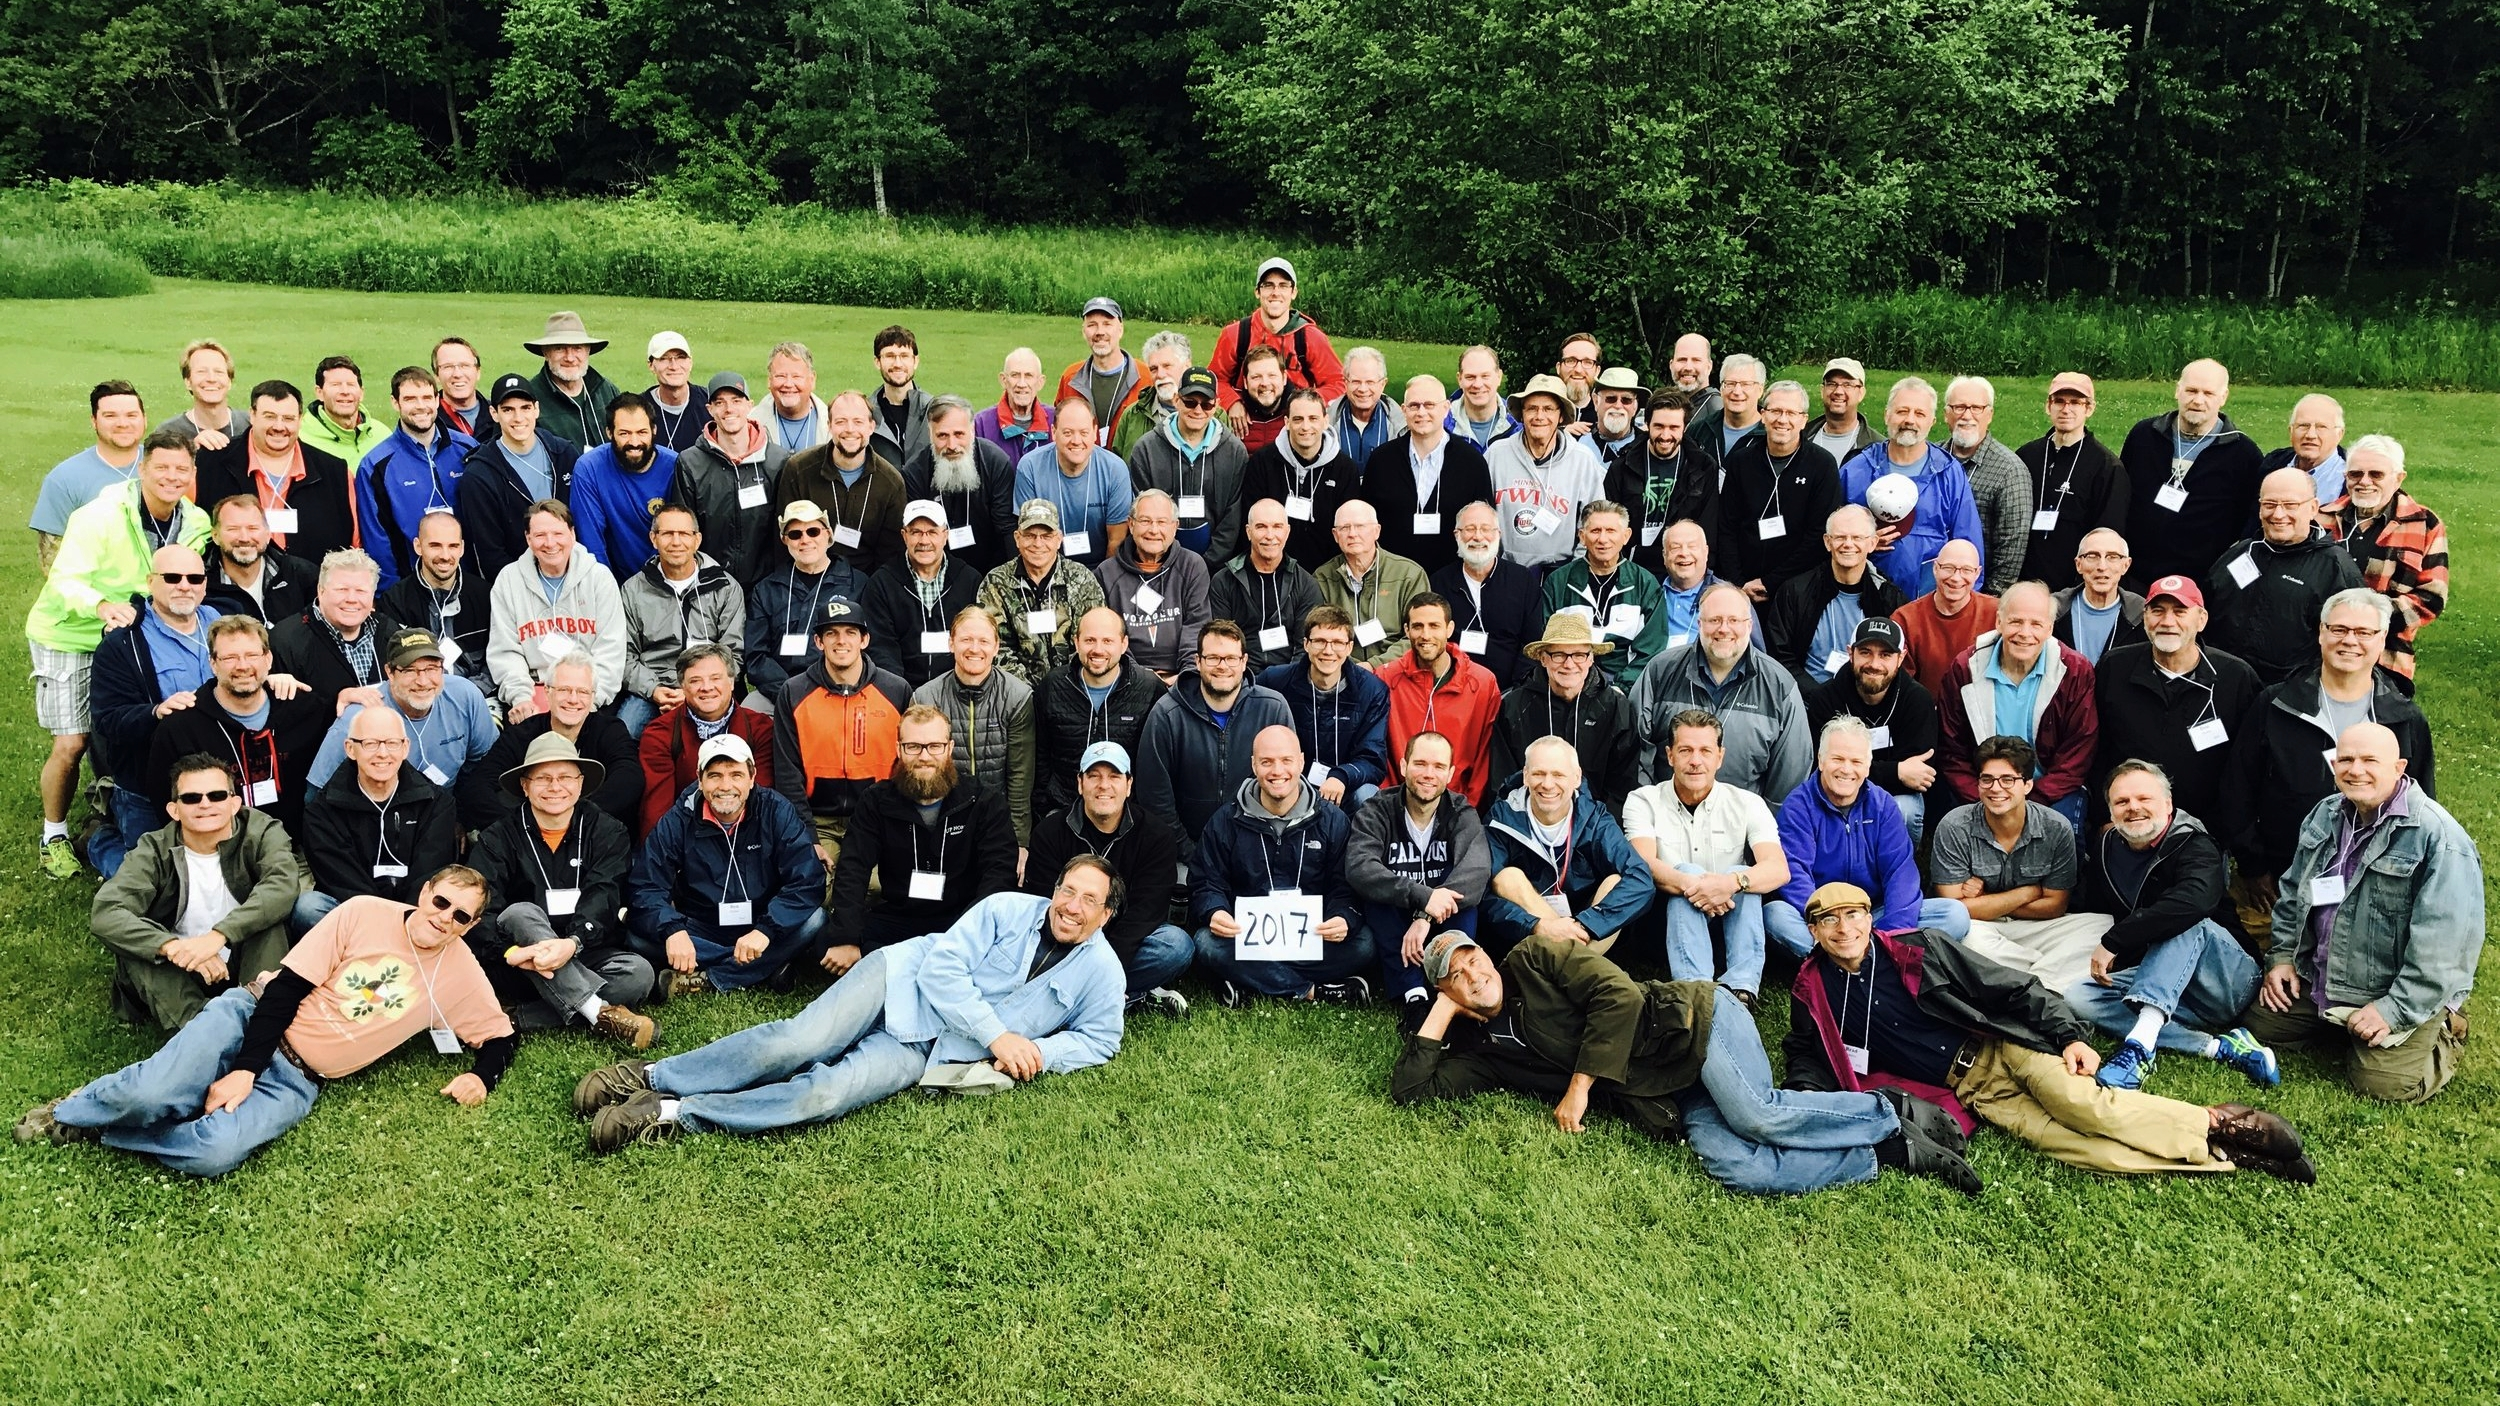 2017 MROP Group Photo